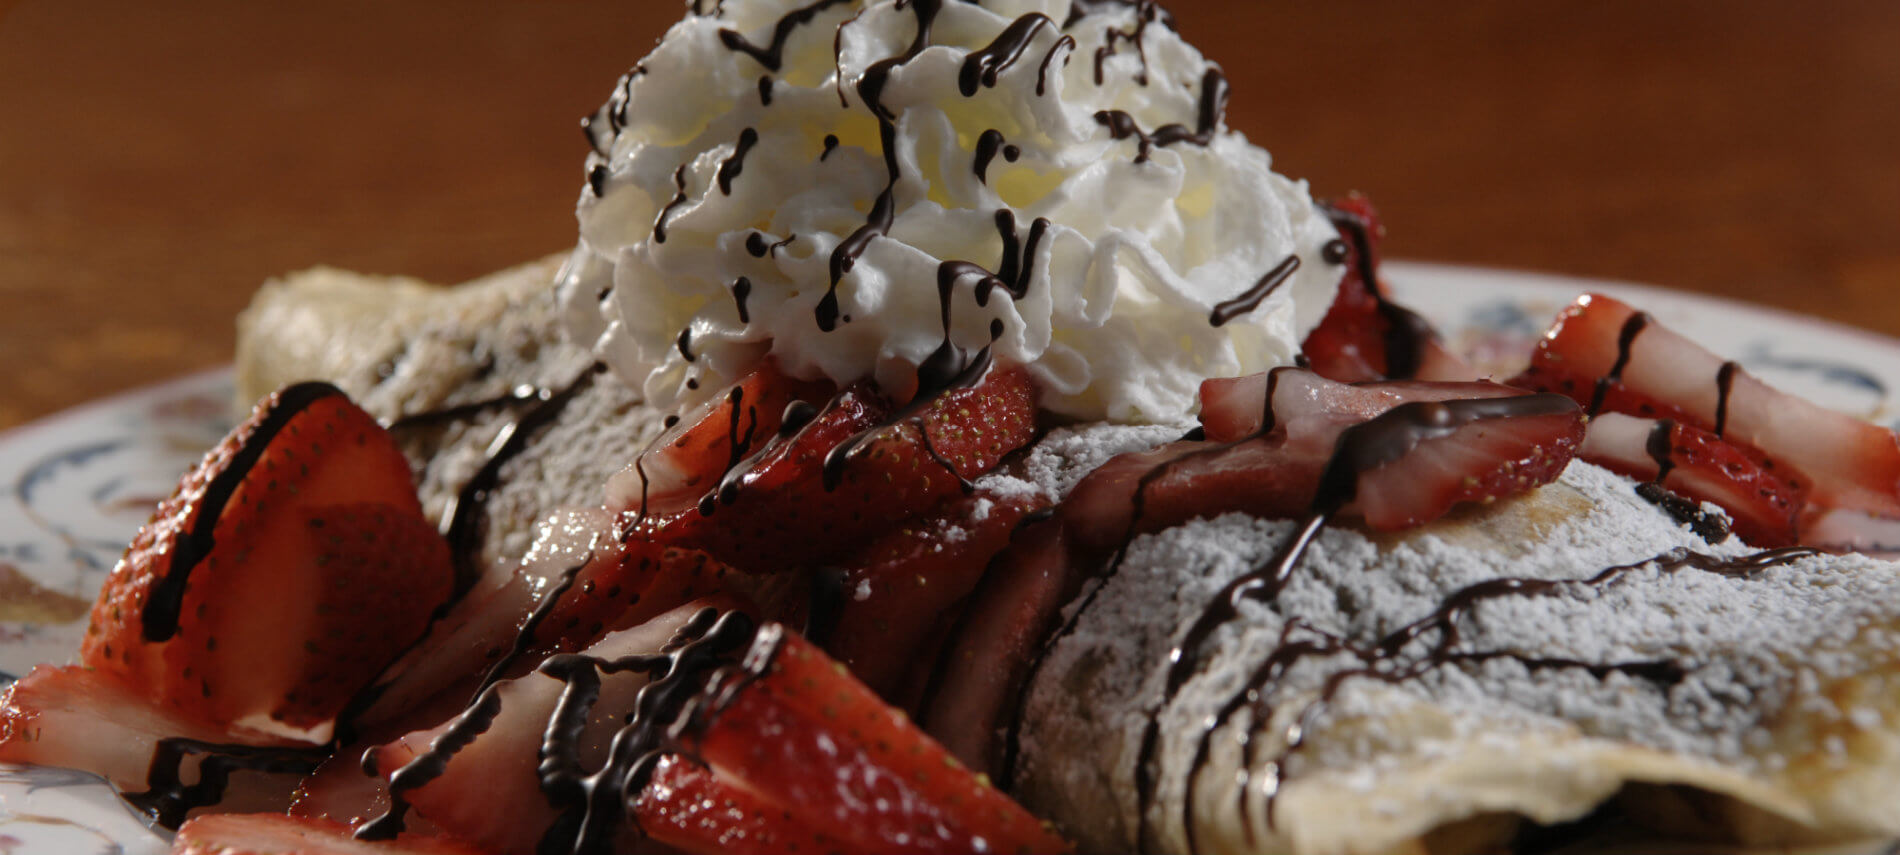 Delicious crepe topped with powdered sugar, whipped cream, strawberries and chocolate syrup